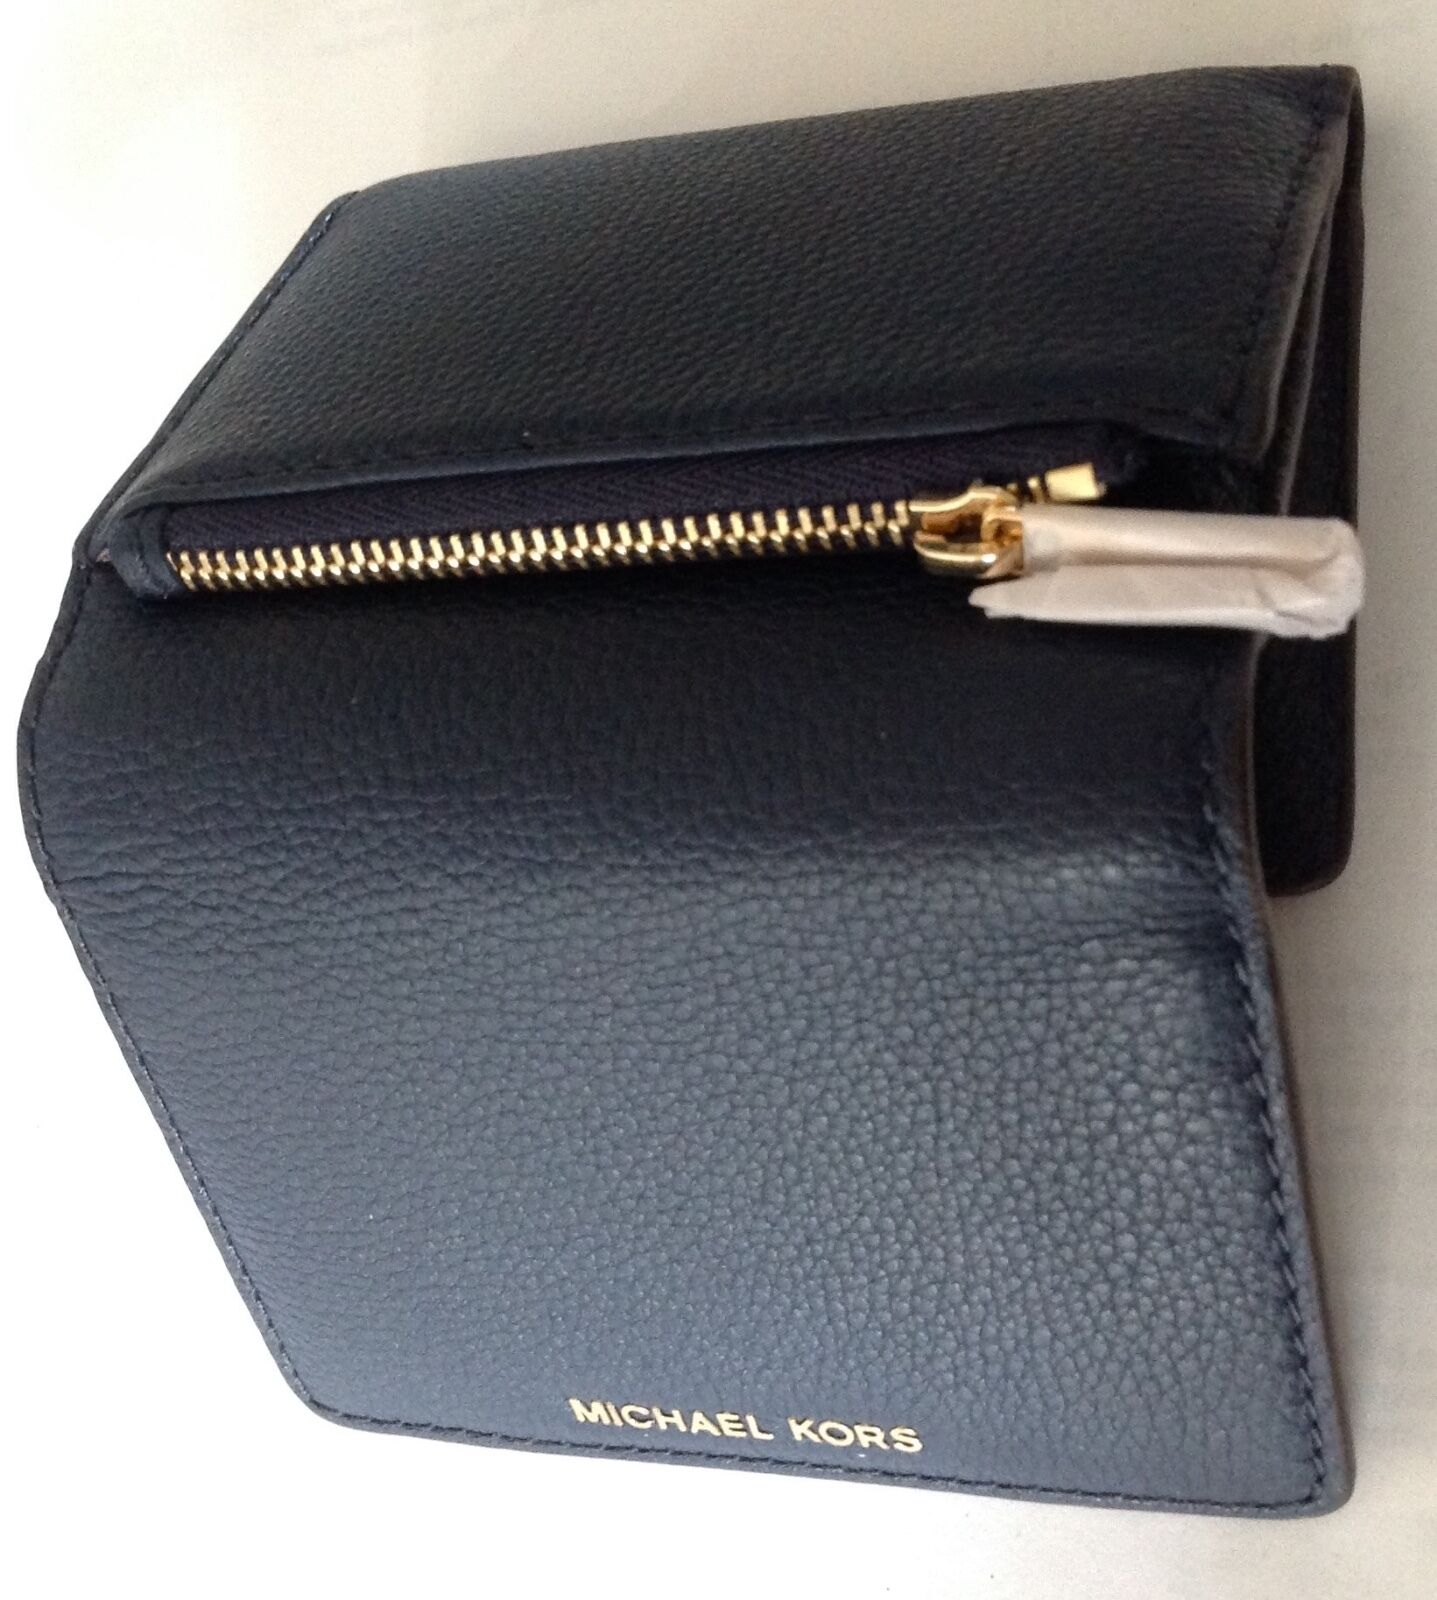 e40cb590e7b5 Michael Kors Liane Small Navy Leather Billfold Wallet 32s6gl3f1l ...